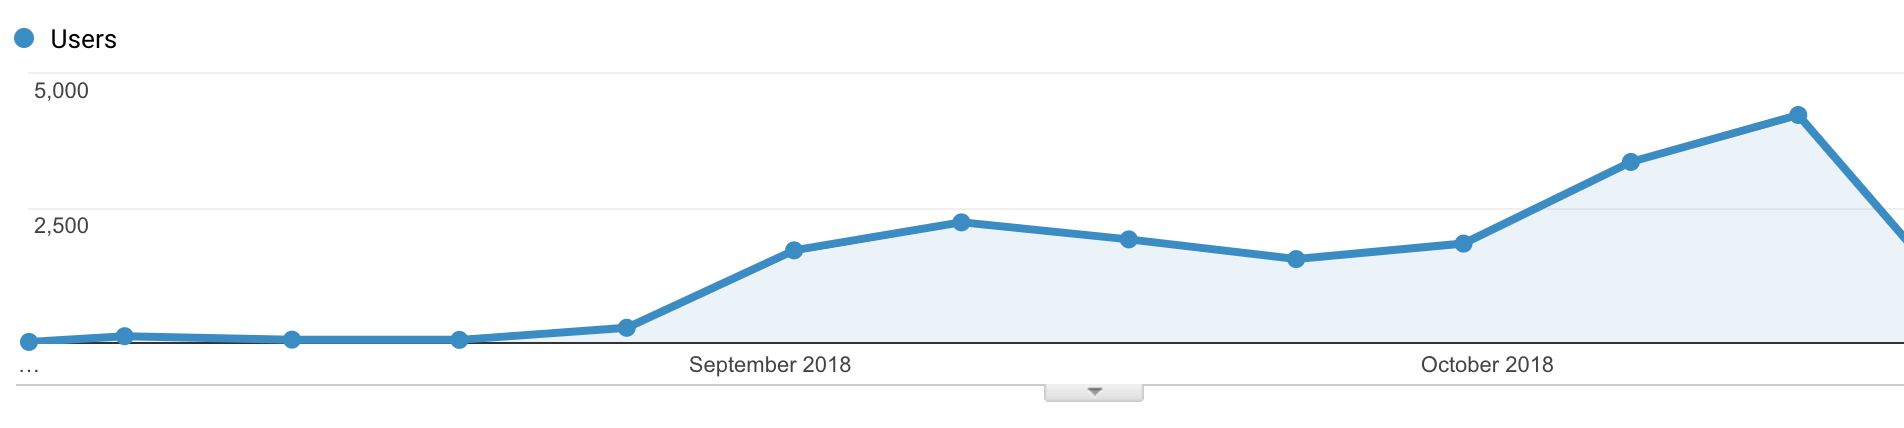 Growth in website traffic leading up to the theatrical release.